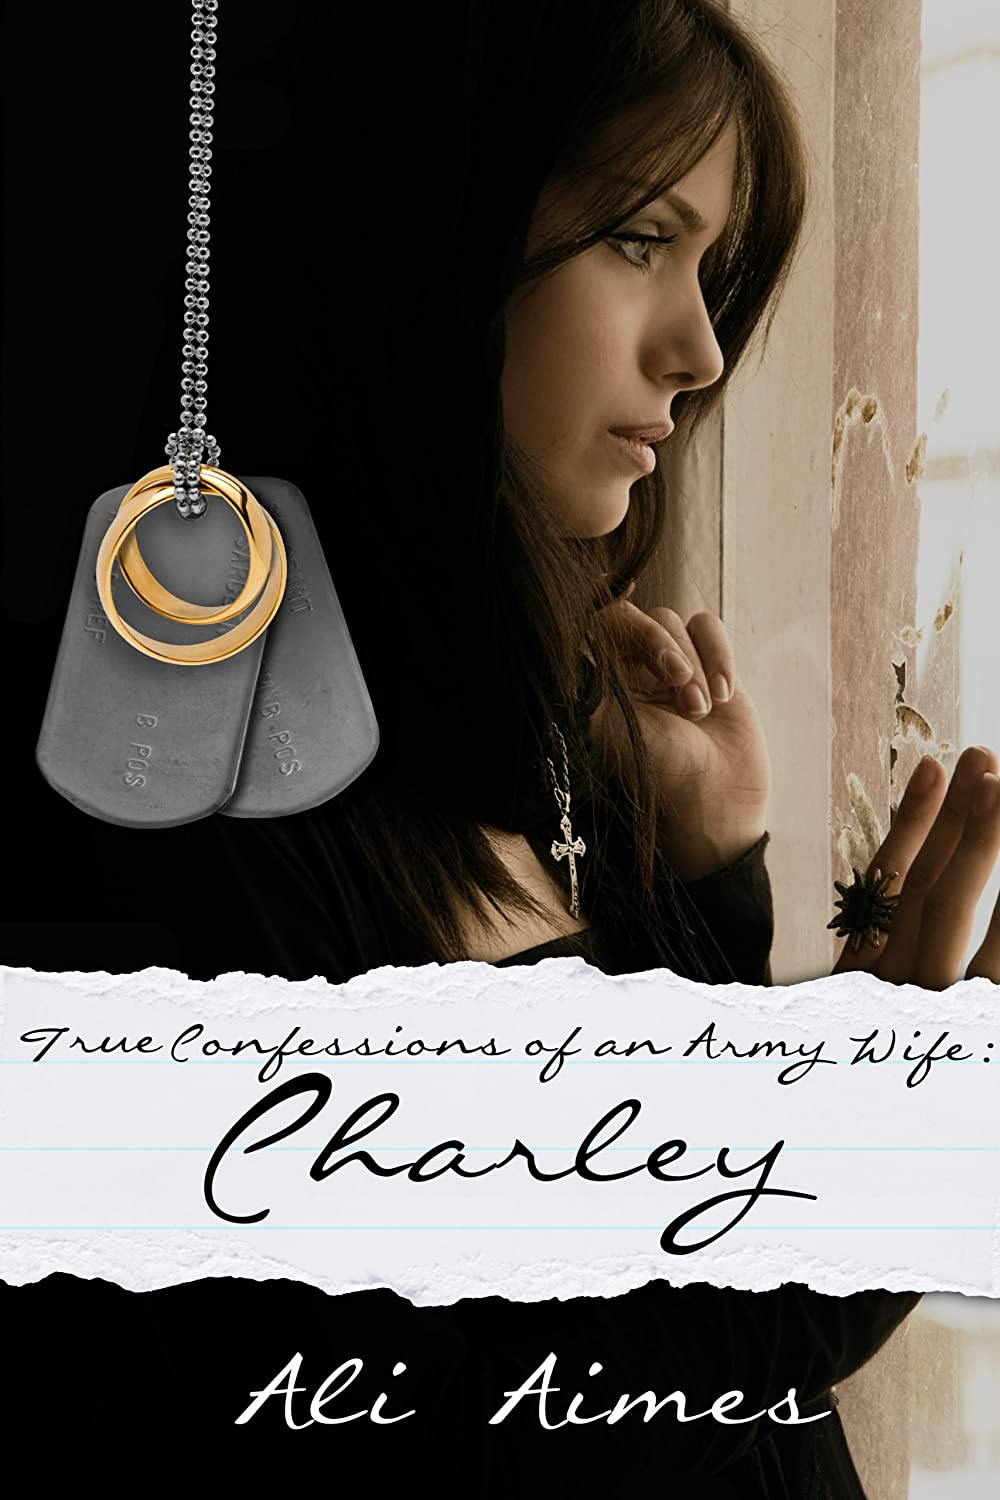 True Confessions of an Army Wife: Charley